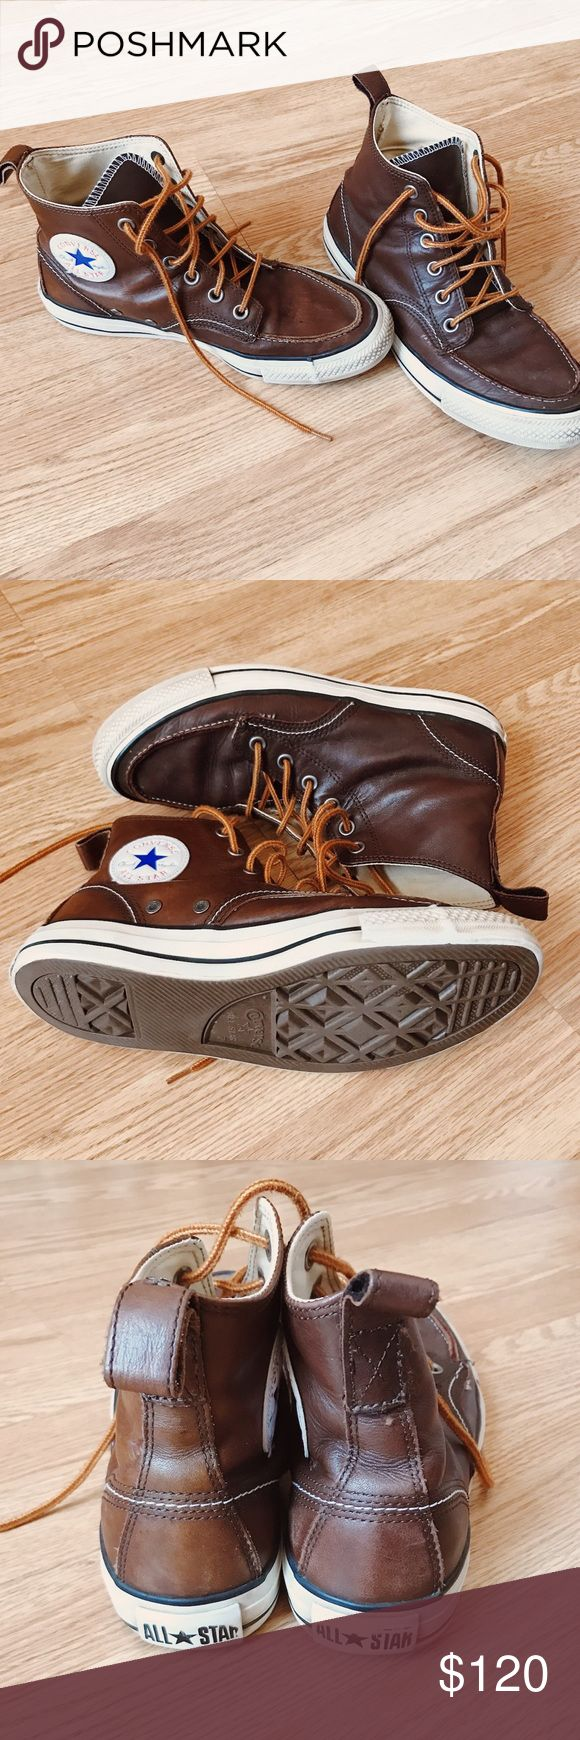 Seasoned Real Leather Boat Style Converse Unisex Leather Converse, boat shoe style. Sprayed with waterproof protection. Leather has been cleaned and oiled once. Original shoe laces. Rare Converse, absolutely in love with them. These shoes will last forever! Converse Shoes Winter & Rain Boots